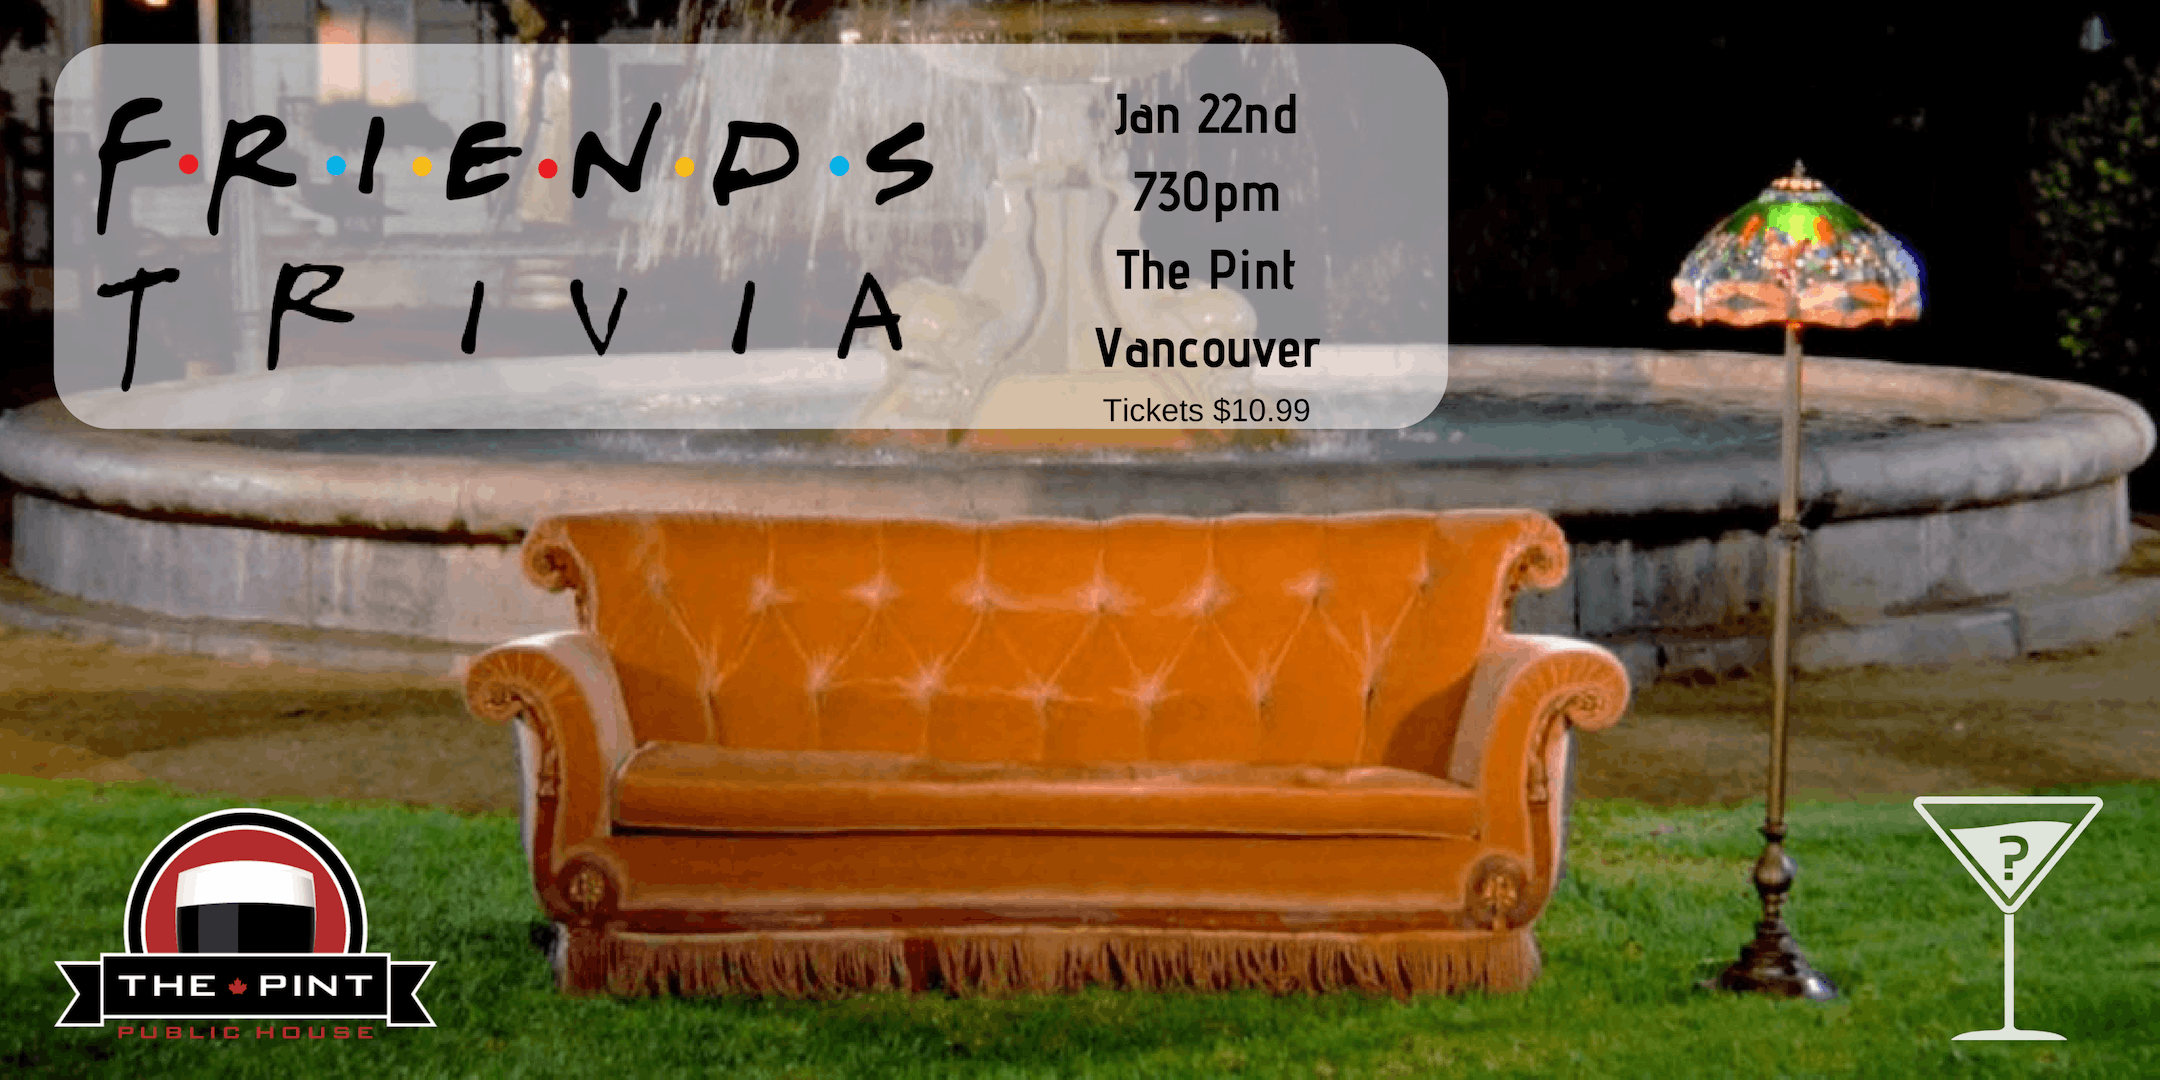 Friends Trivia - The Pint Vancouver Jan 22 730pm